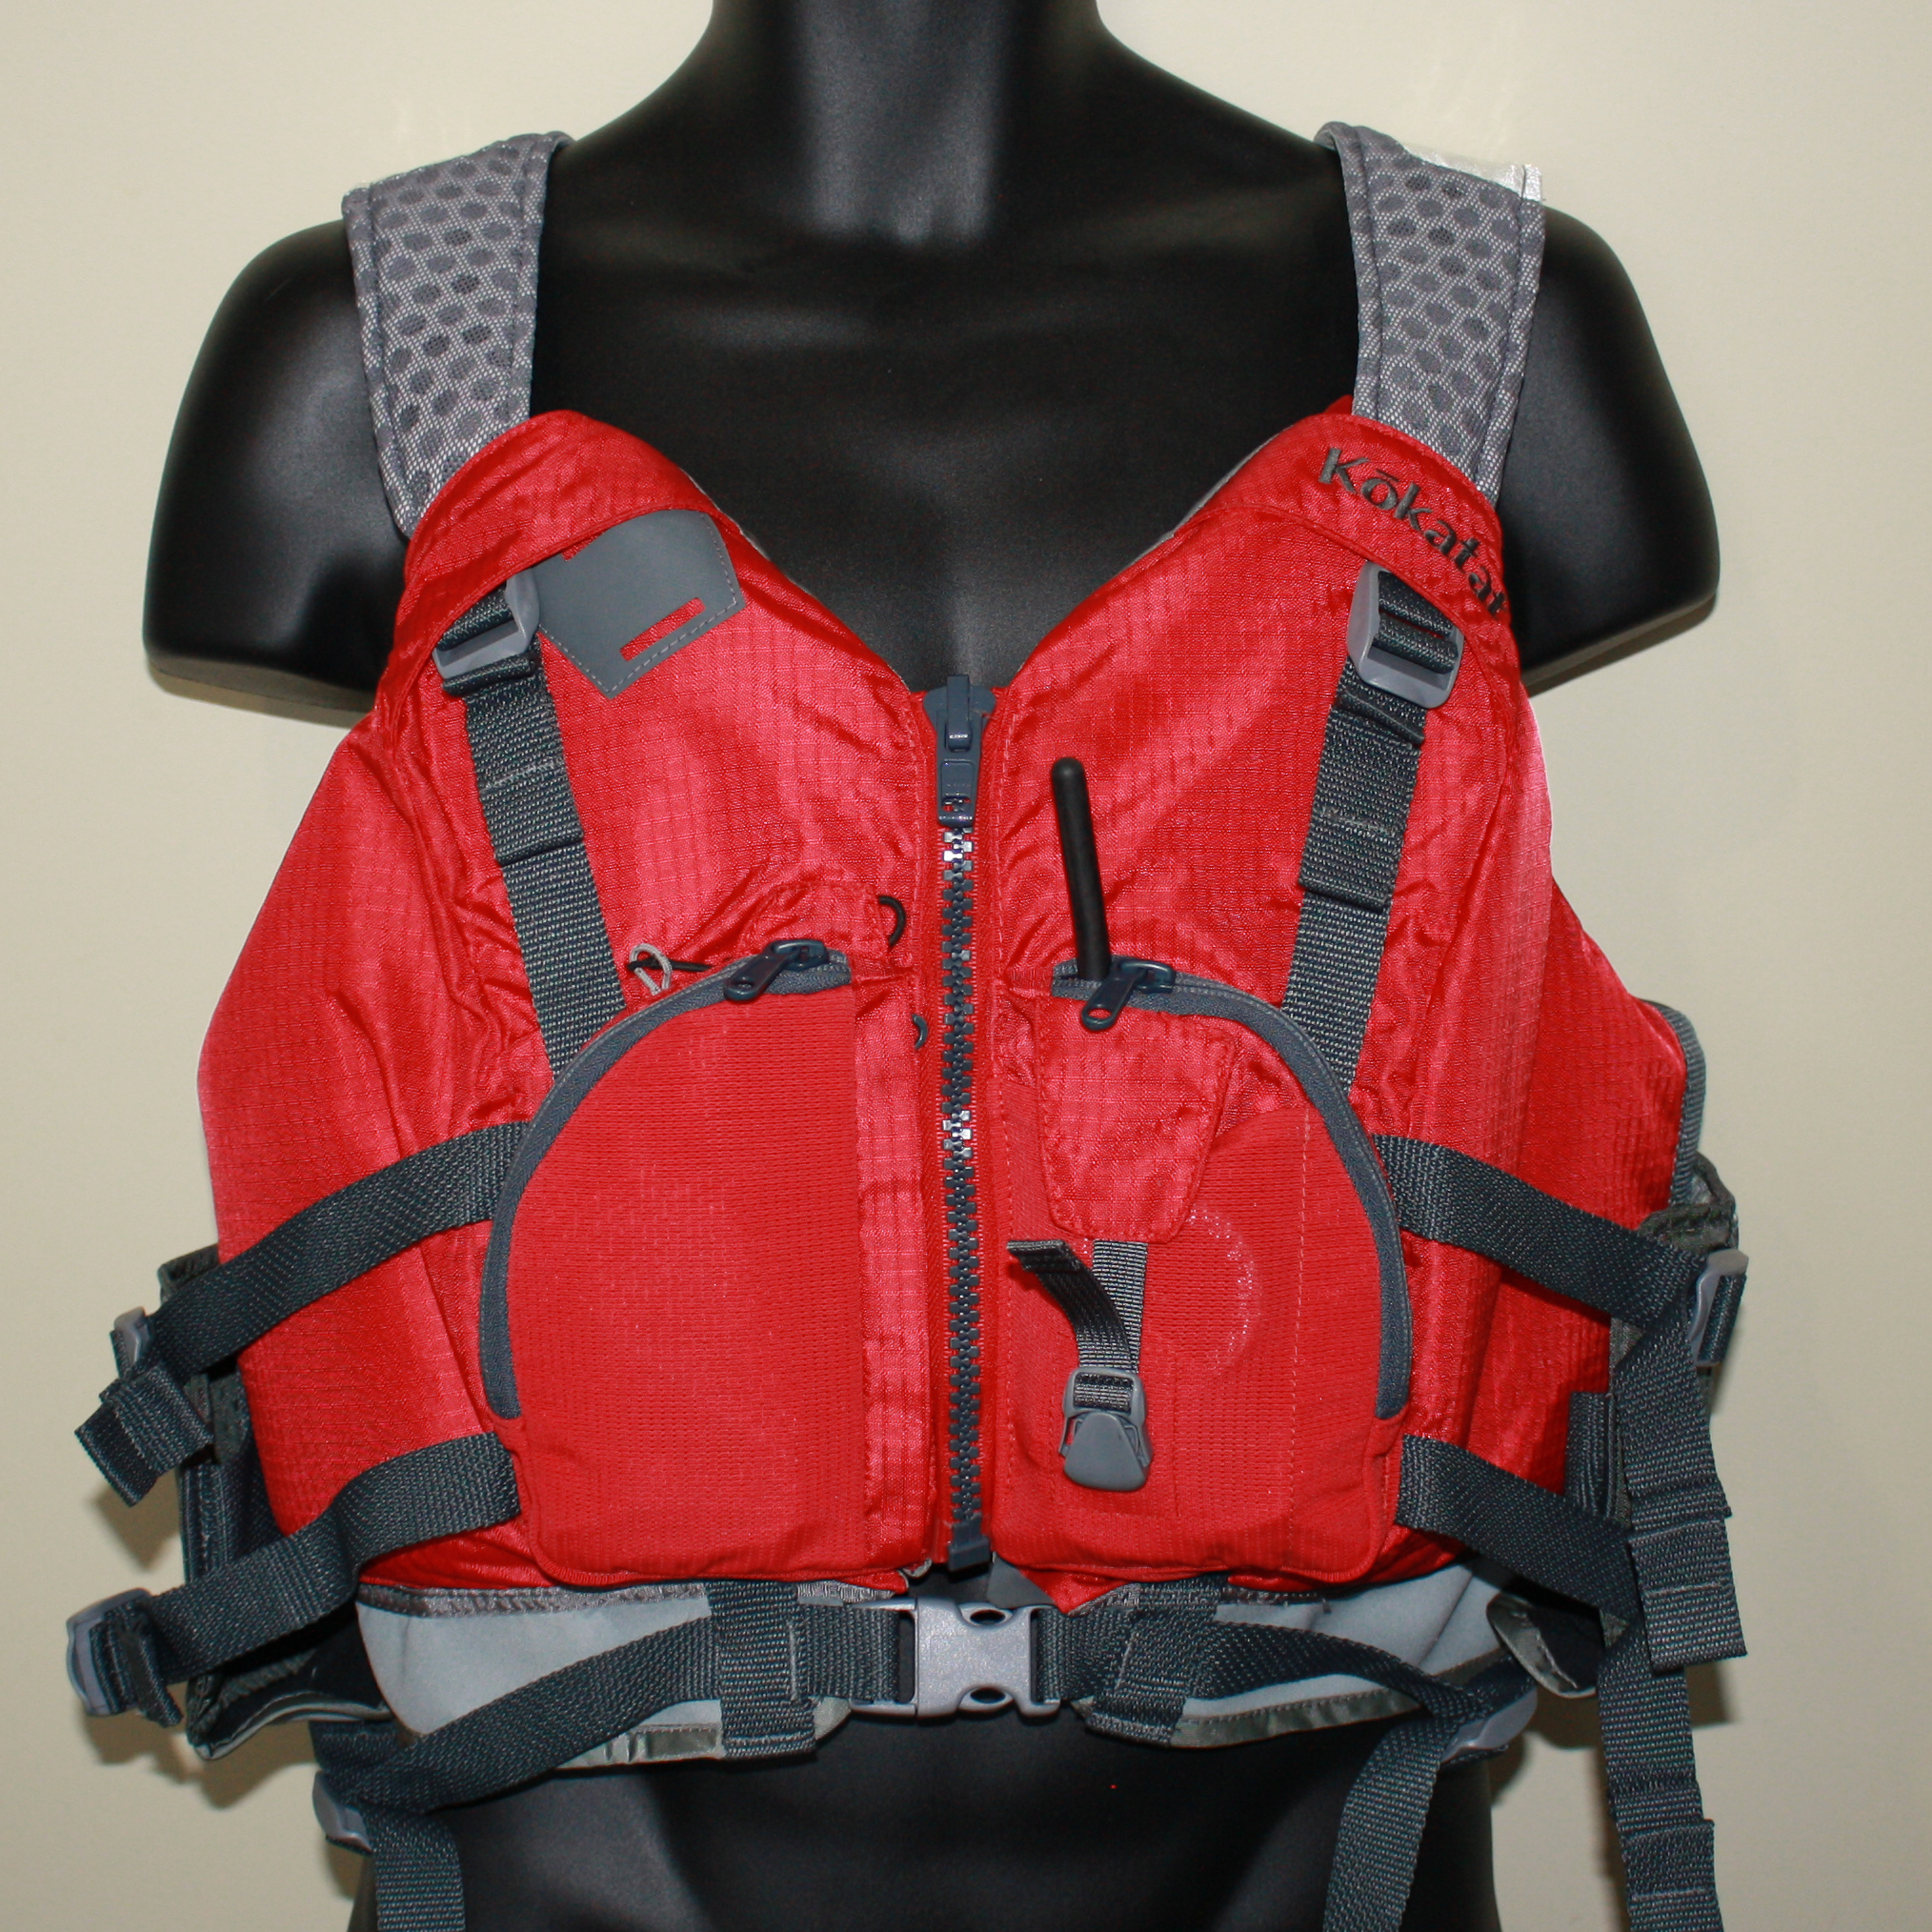 How much pocket space does a Kokatat Neptune PFD have?